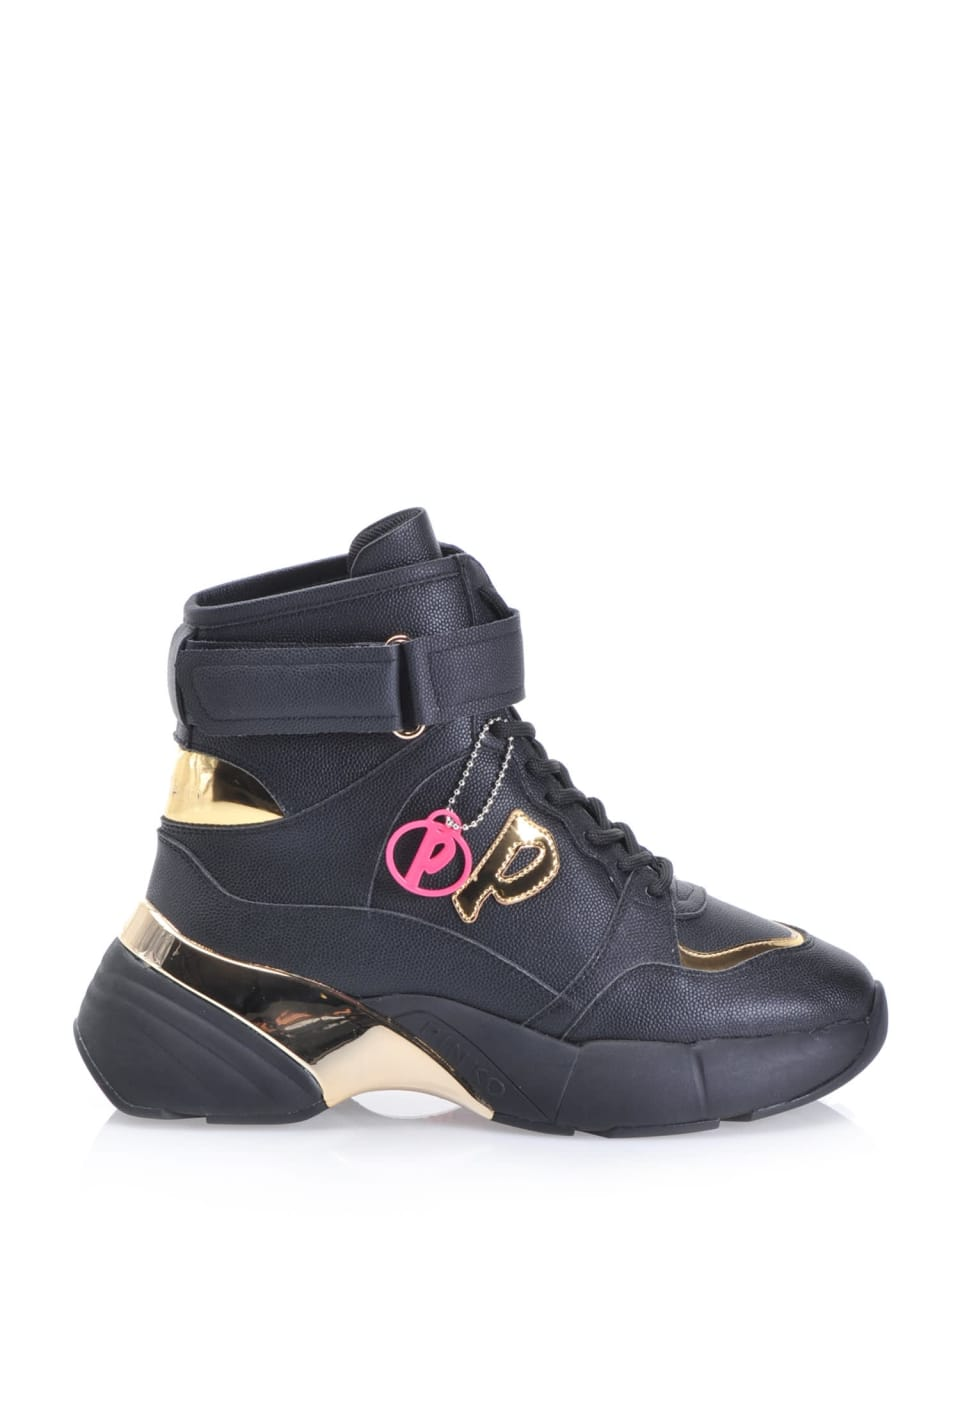 Shoes To Rock high top sneakers with laminated details